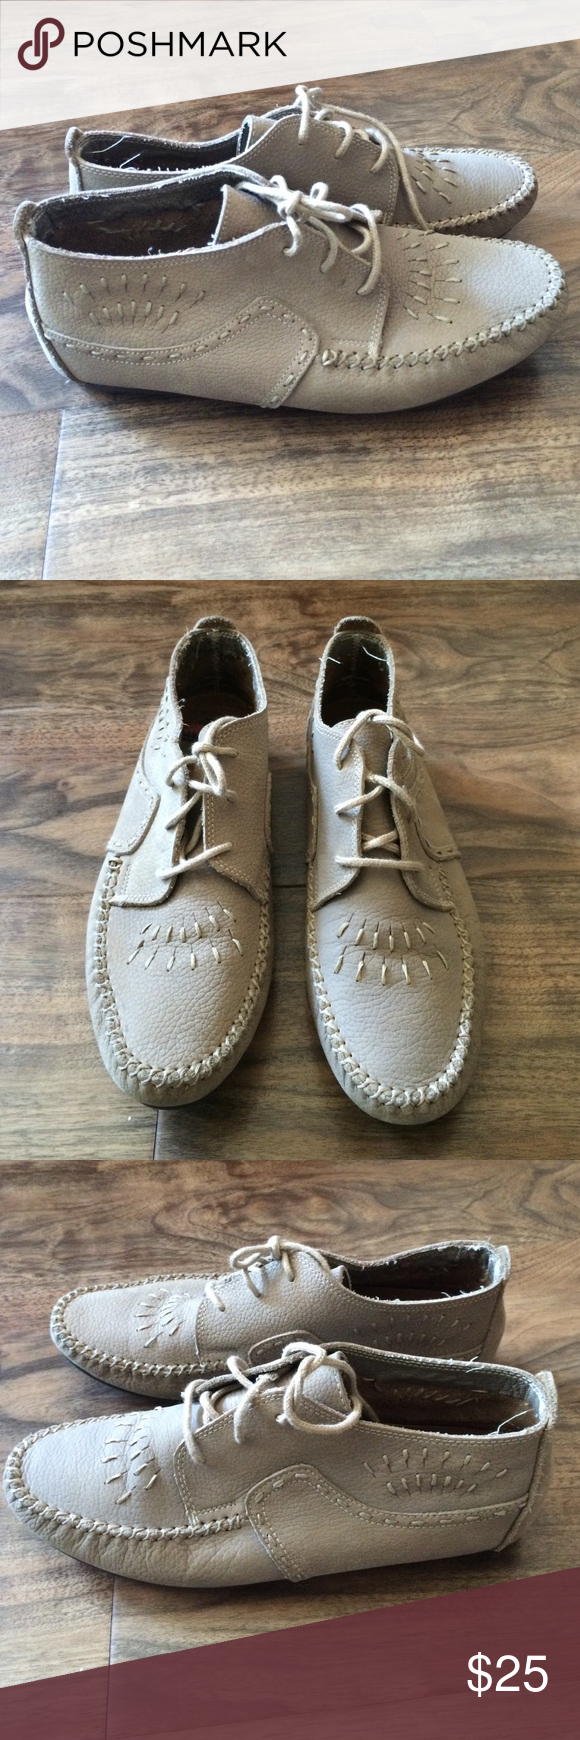 Hush puppies cream leather womens shoes 8.5 Preowned but excellent condition. Womens hush puppies casual shoes. Cream beige leather color. Worn twice but like new. They are a nice style and have nice details. Look like ankle boots or dress shoes. Size 8 1/2 womens. Thanks. Hush Puppies Shoes Ankle Boots & Booties